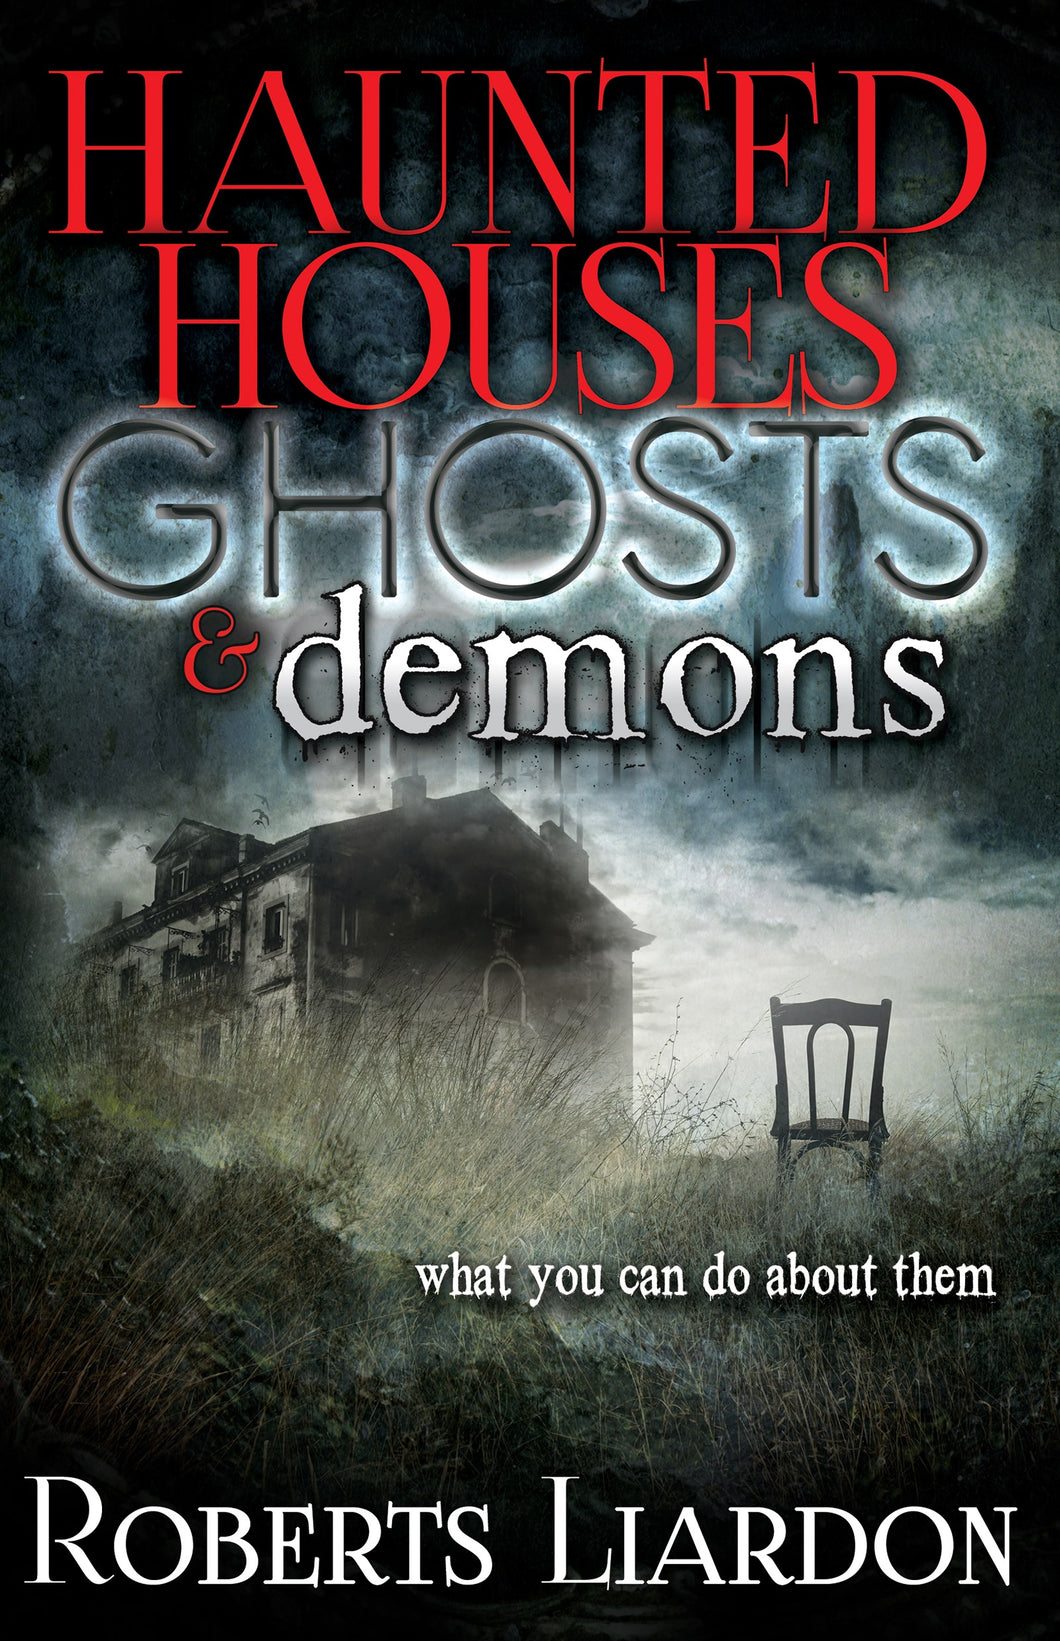 Haunted Houses Ghosts And Demons